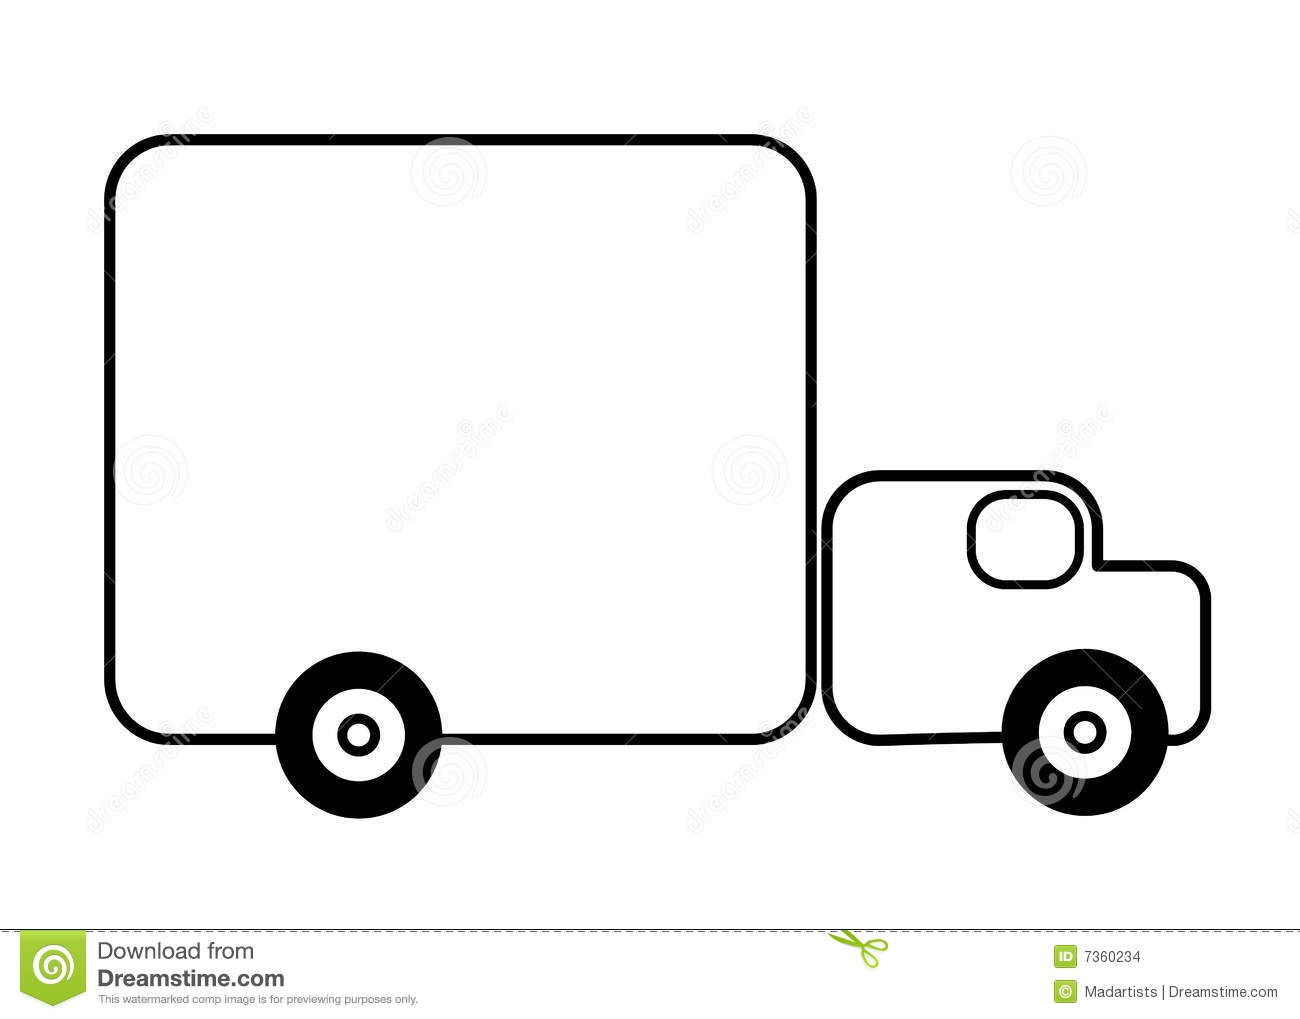 Truck clipart outline Therapy Pickup Truck for Use